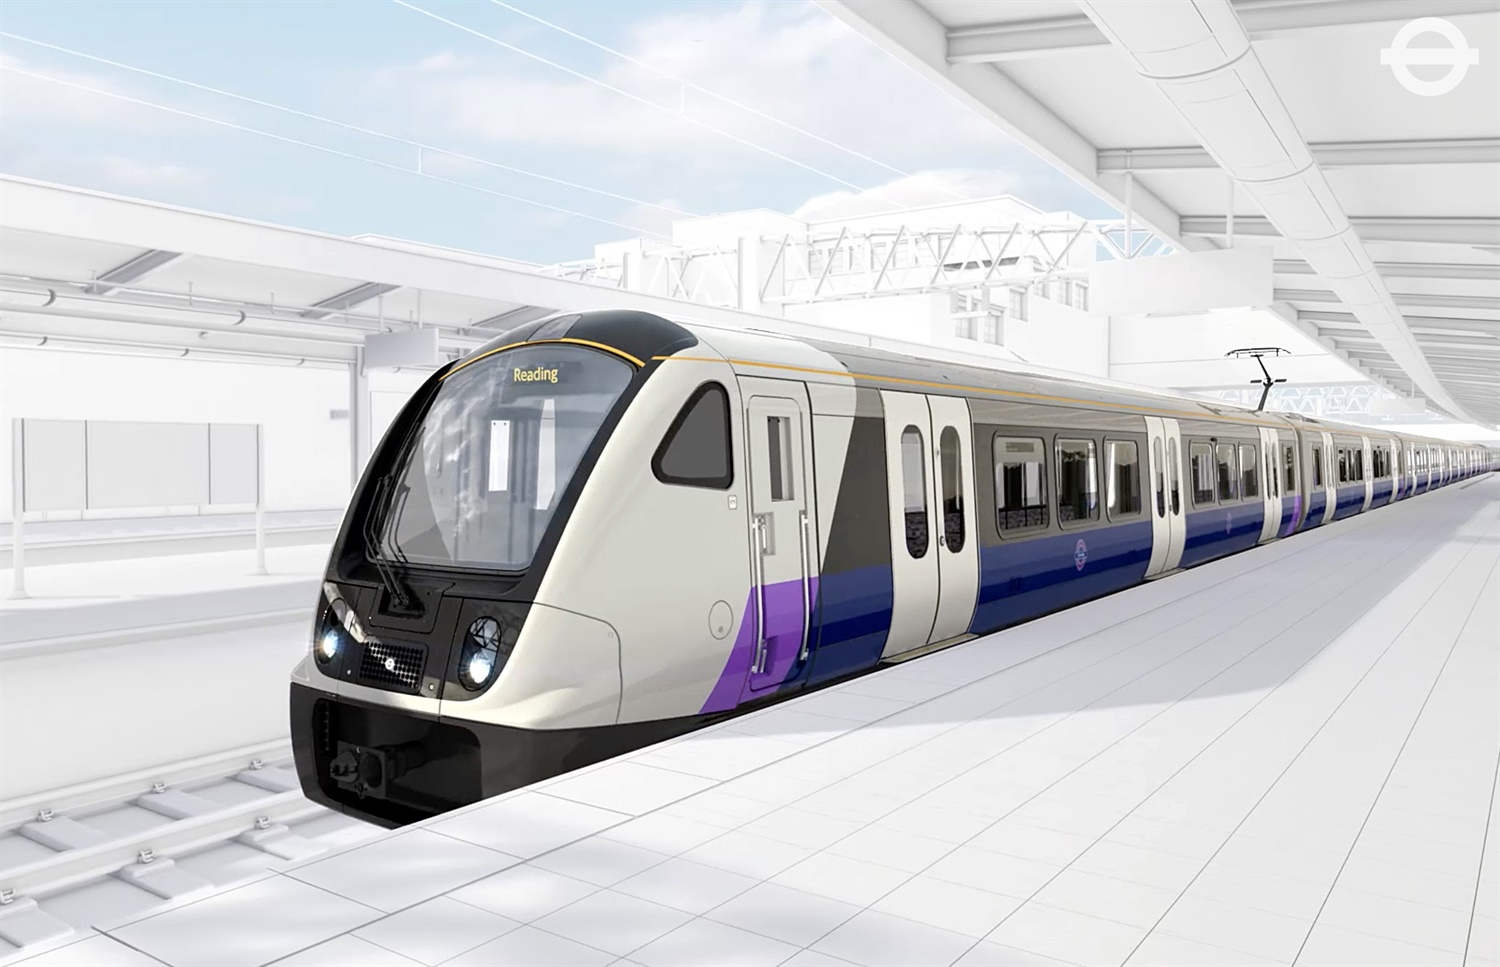 Crossrail unveils first images of Bombardier's Aventra train design